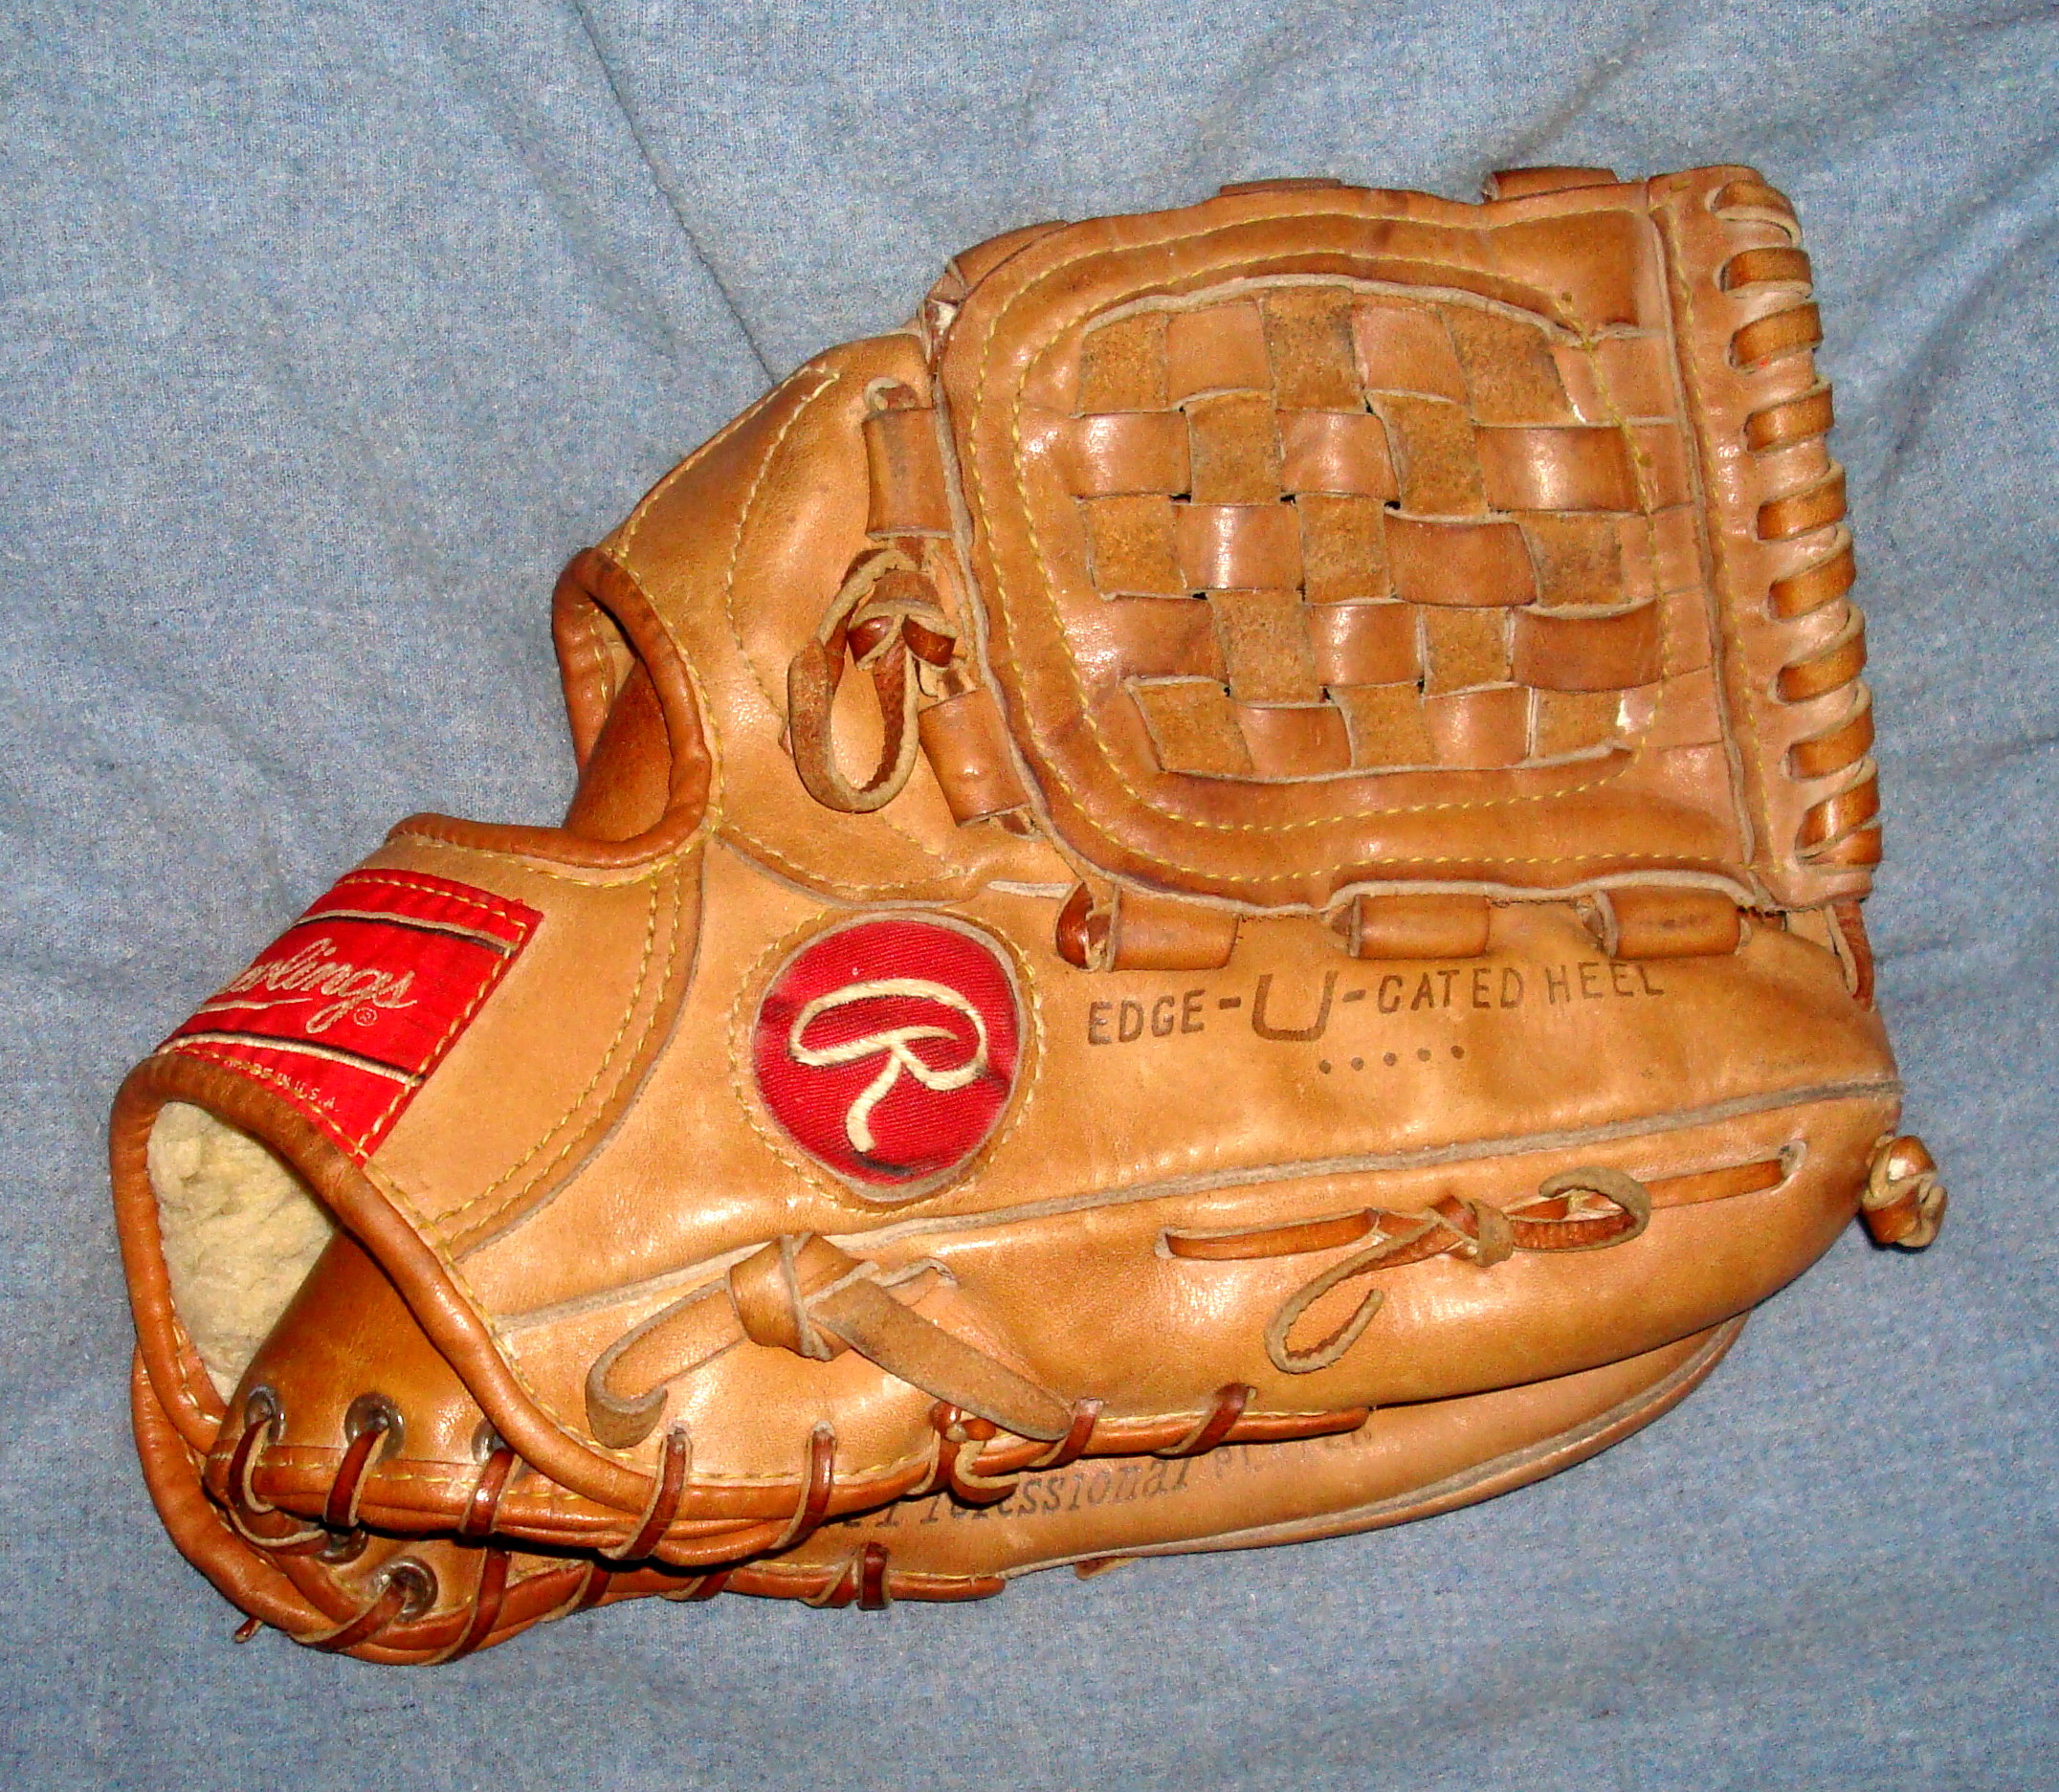 erotic-baseball-glove-dating-guide-tit